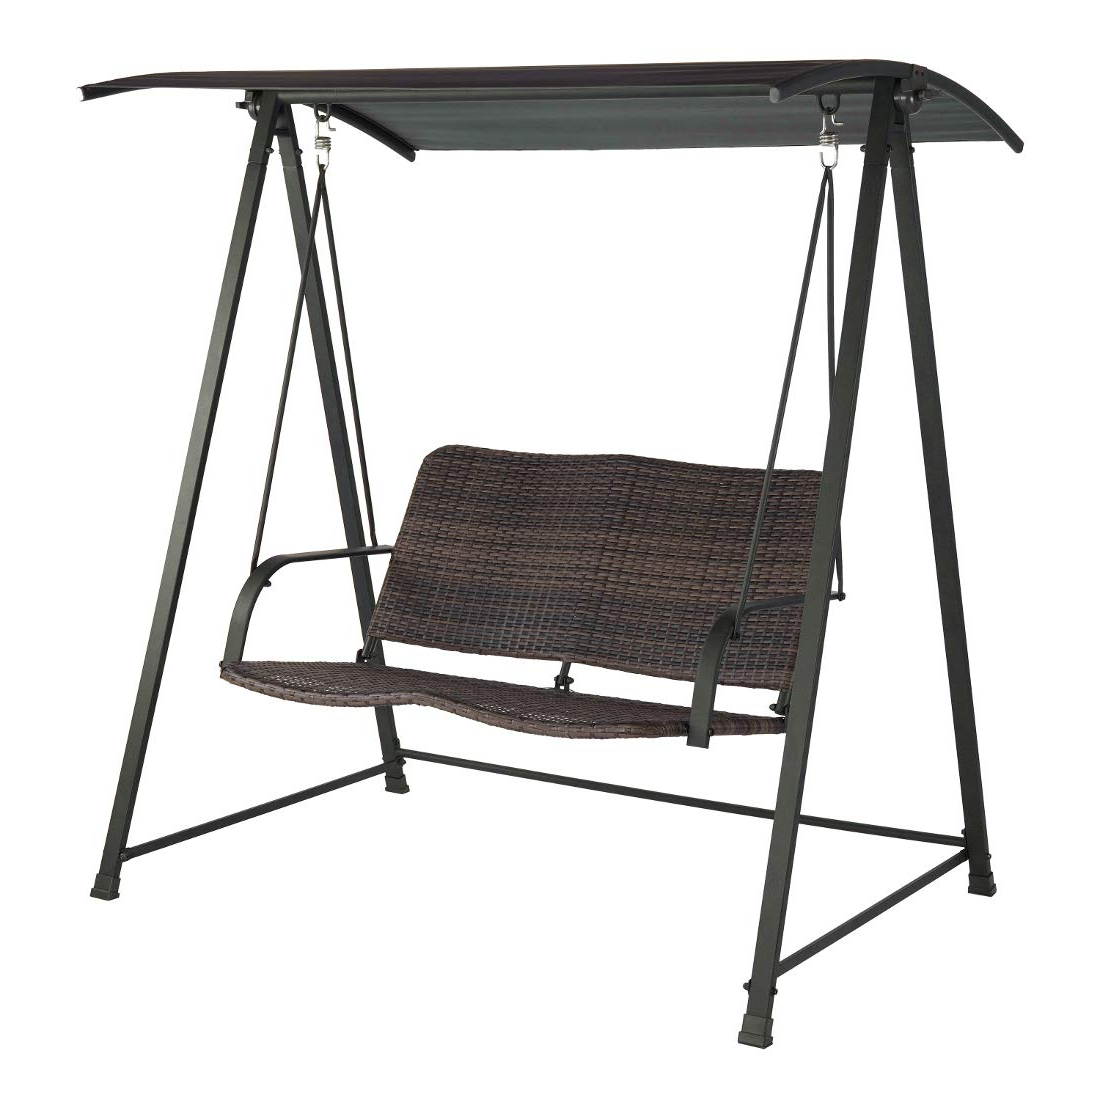 Latest Amazon : Jnwd Resin Wicker Porch Swing Steel Frame Stand Regarding Wicker Glider Outdoor Porch Swings With Stand (View 13 of 30)